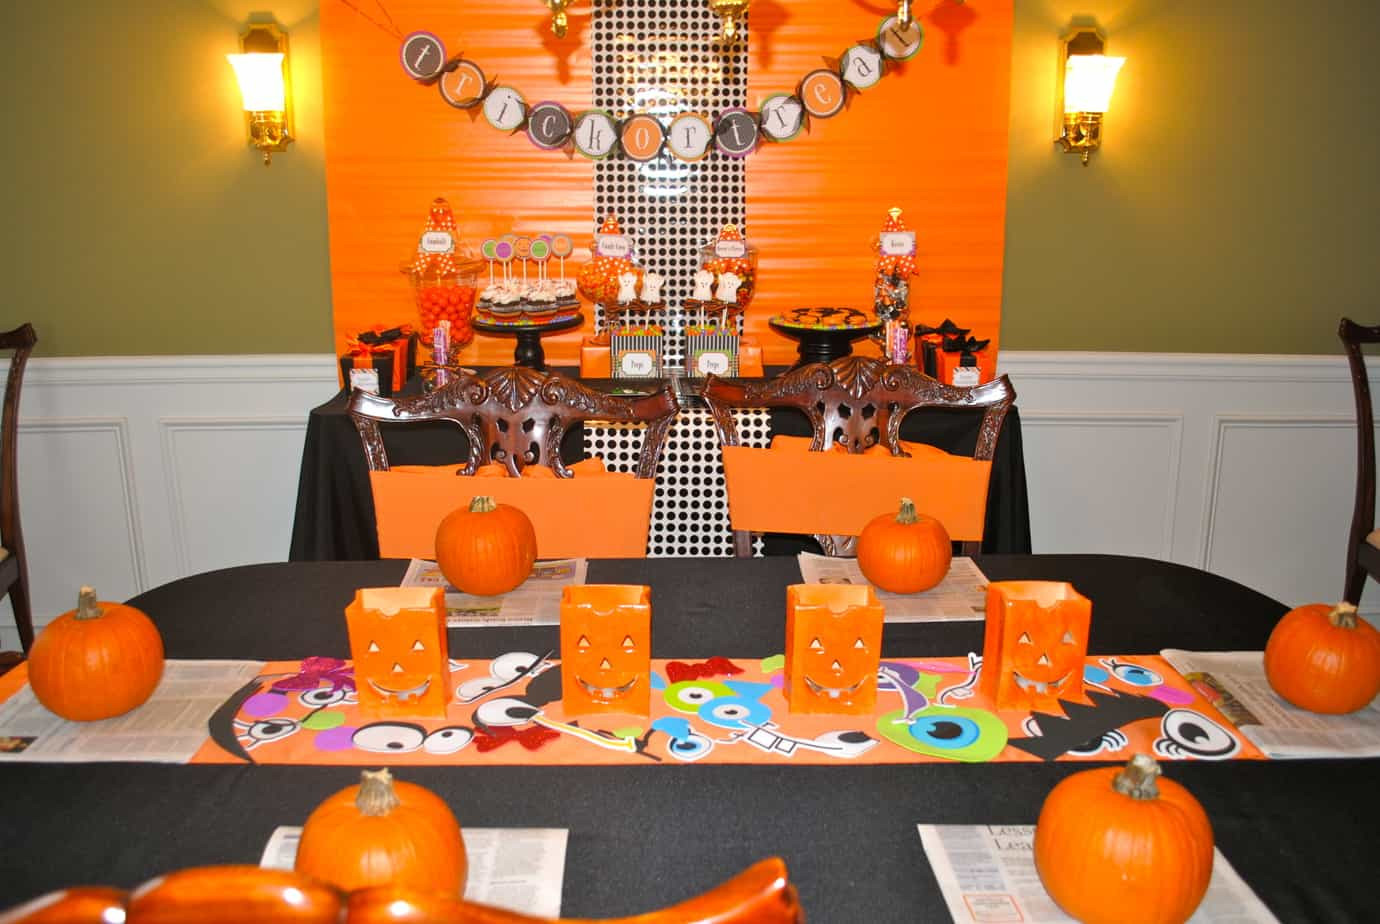 Halloween Themed Kid Party Ideas  Halloween Party Ideas For Kids 2019 With Daily